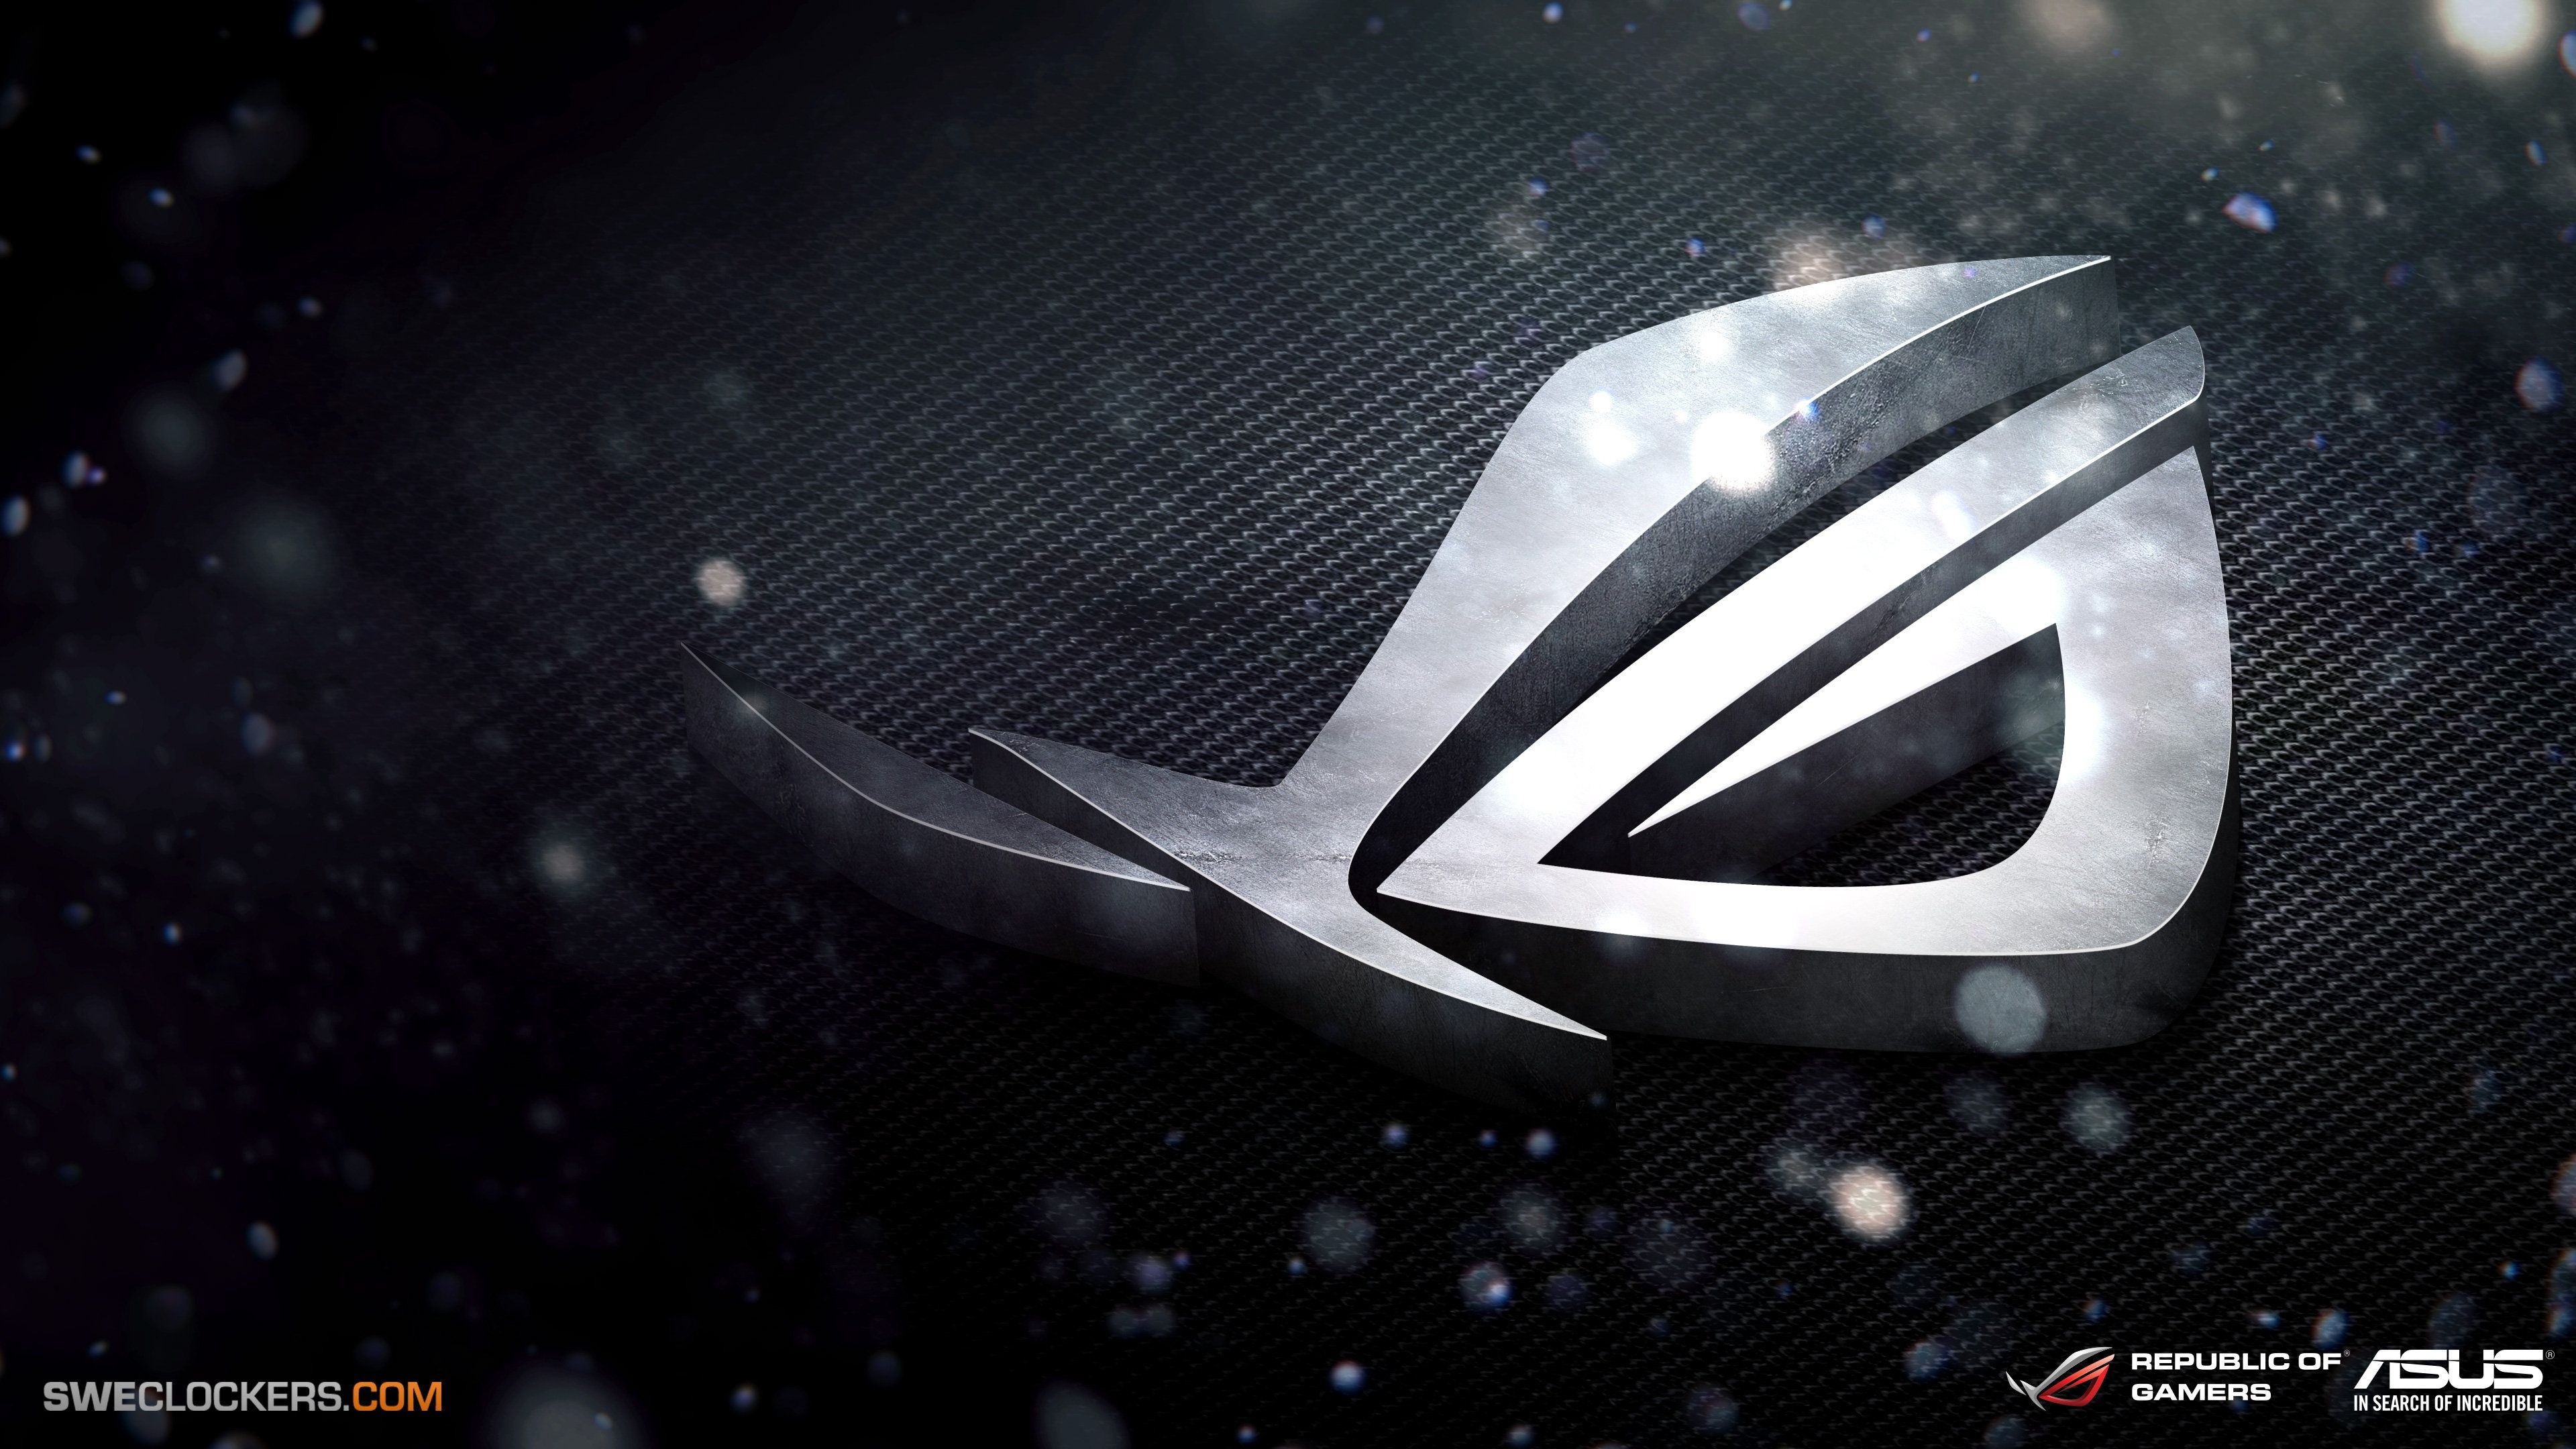 3840x2160 Awesome 4K ROG Wallpapers   ROG - Republic of Gamers Global